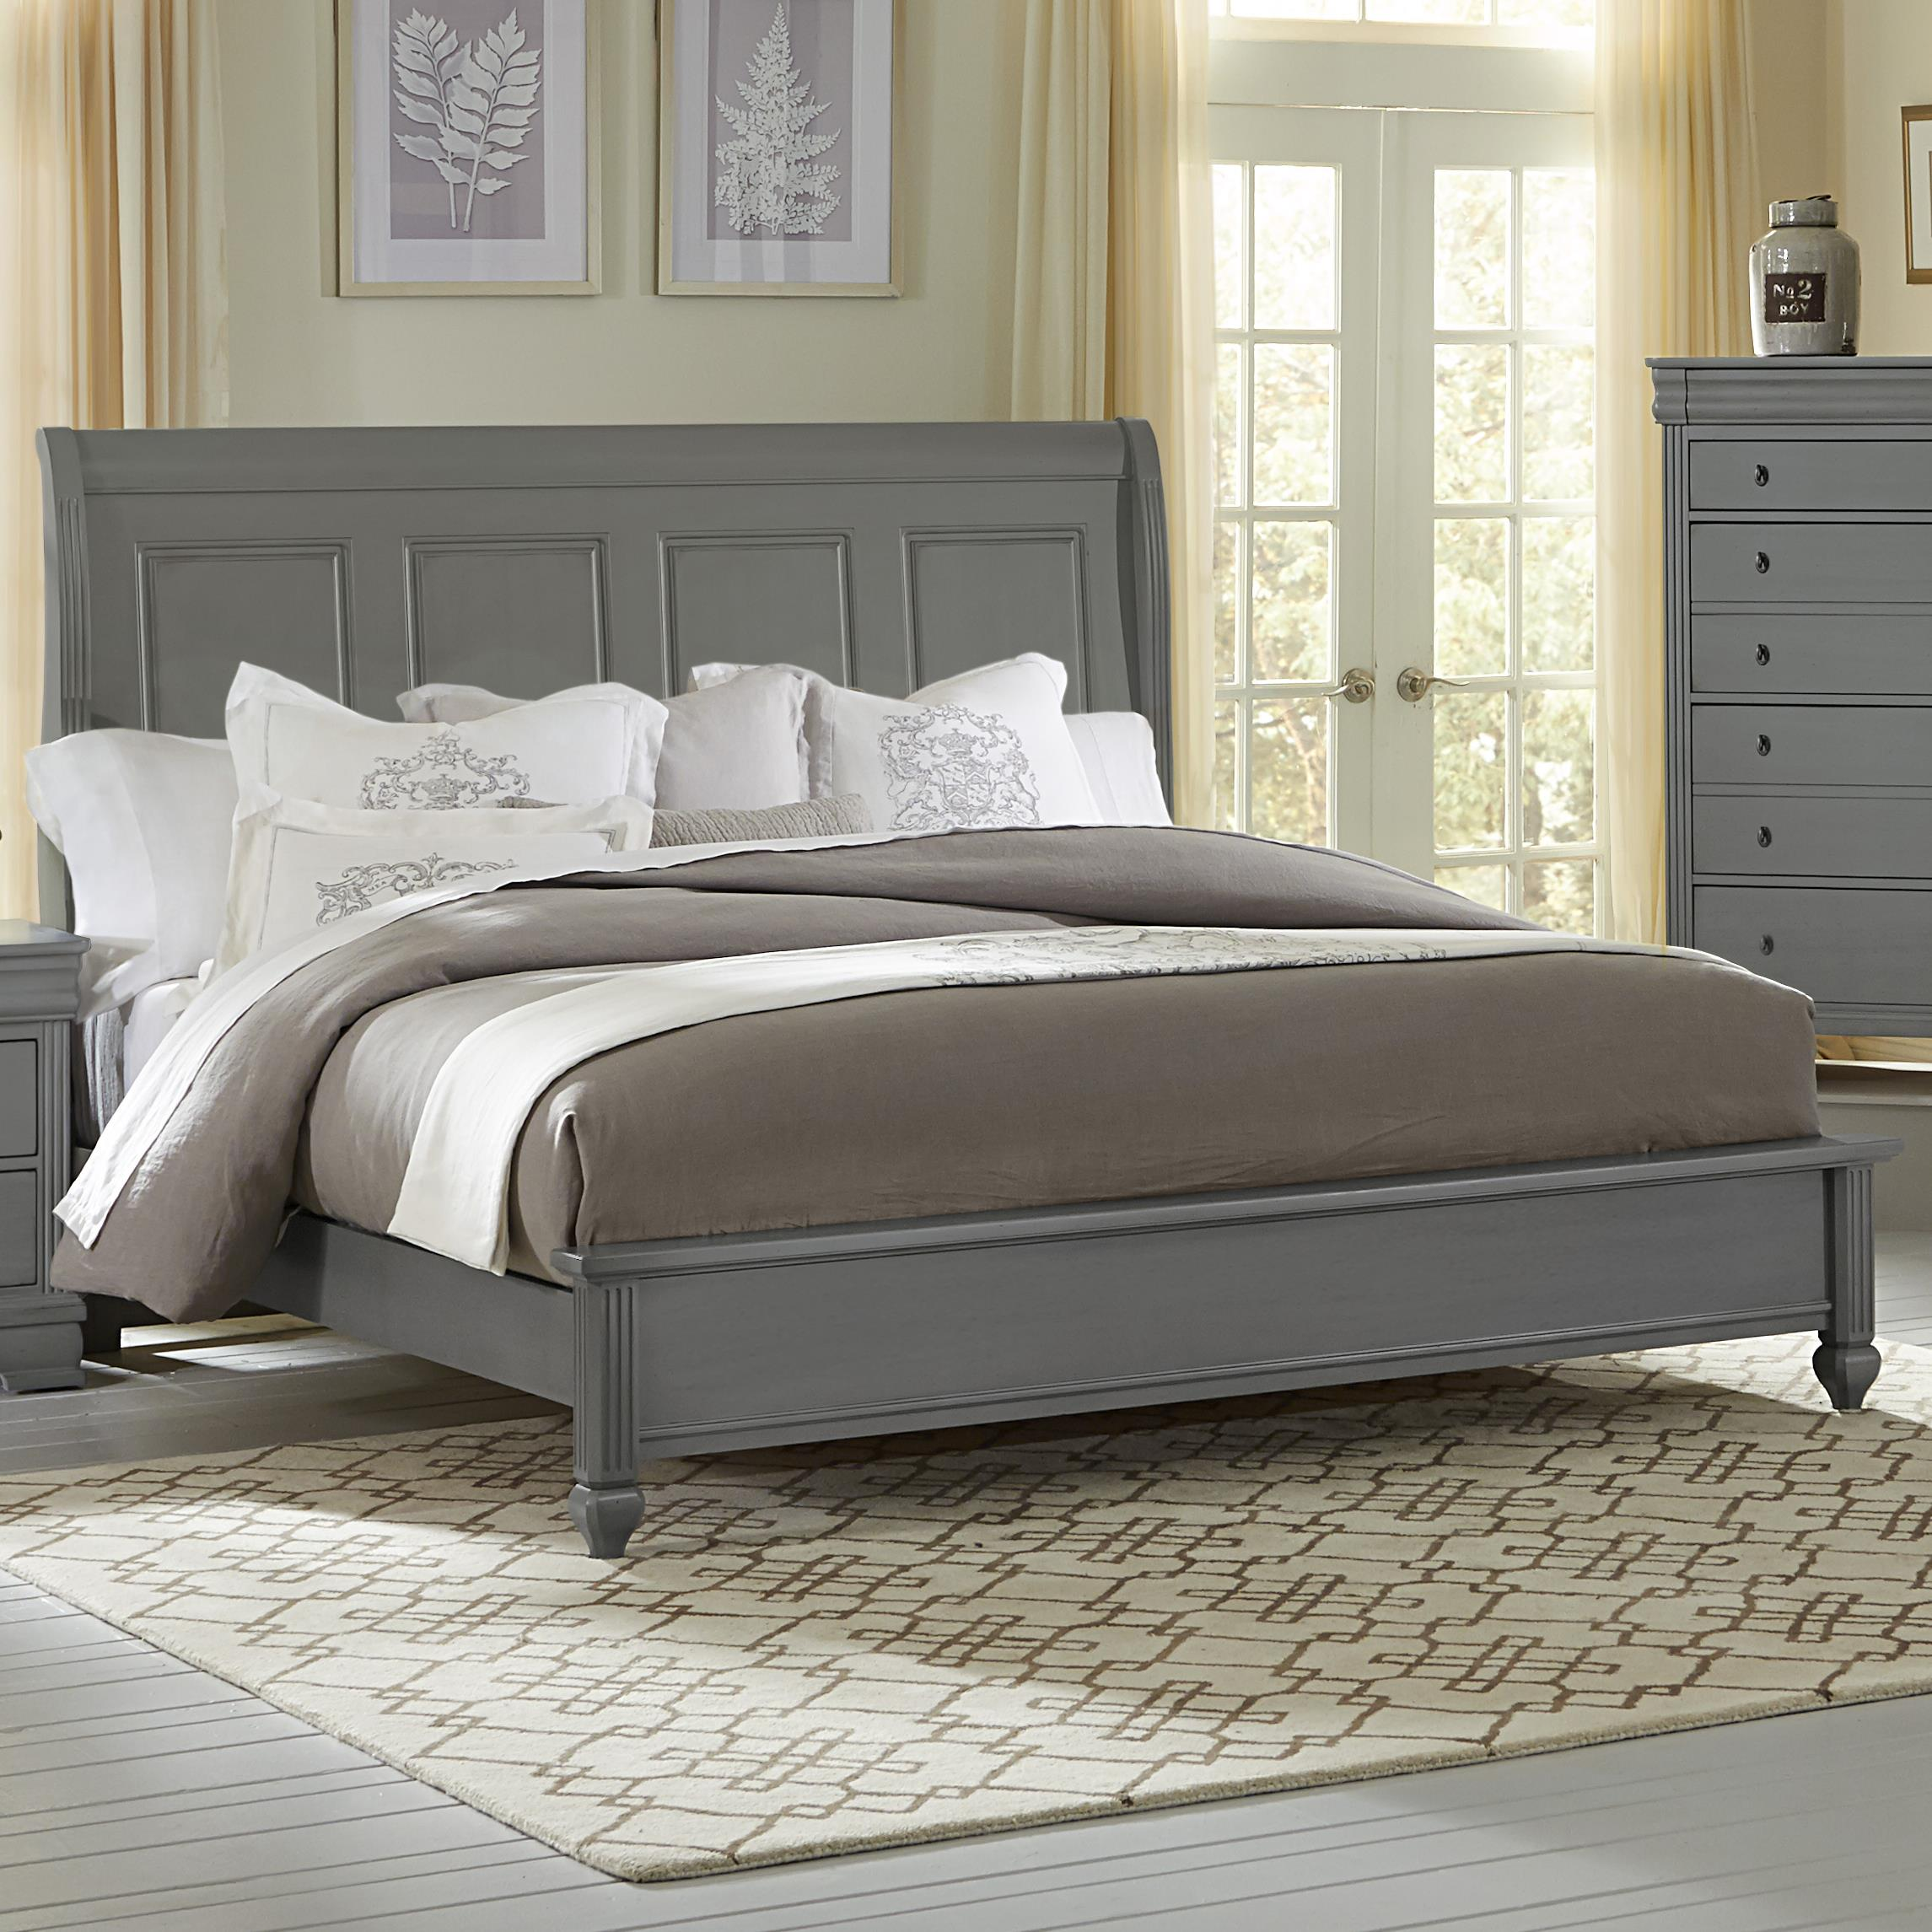 Sleigh Bed Headboard Versailles Queen Sleigh Bed With Platform Footboard By Vaughan Bassett At Crowley Furniture Mattress